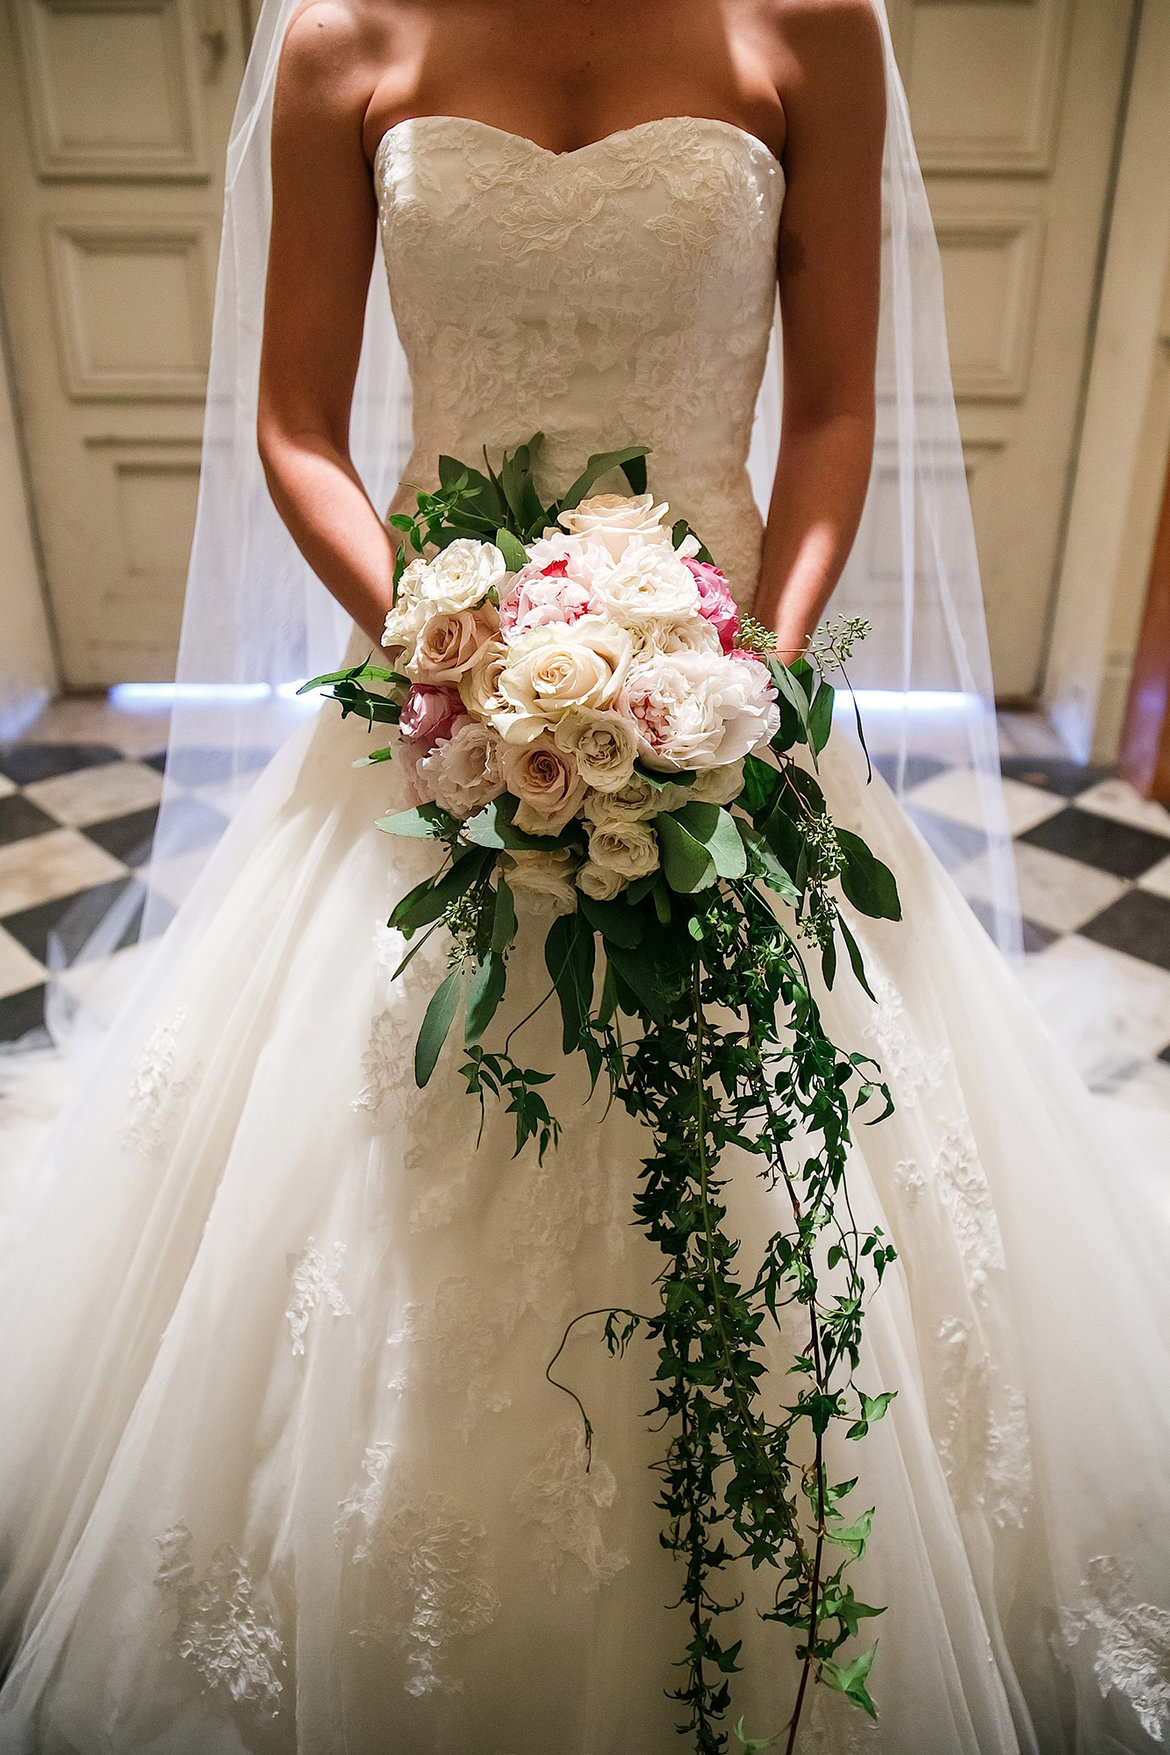 The Most Beautiful Ideas for Your Wedding Bouquet ...